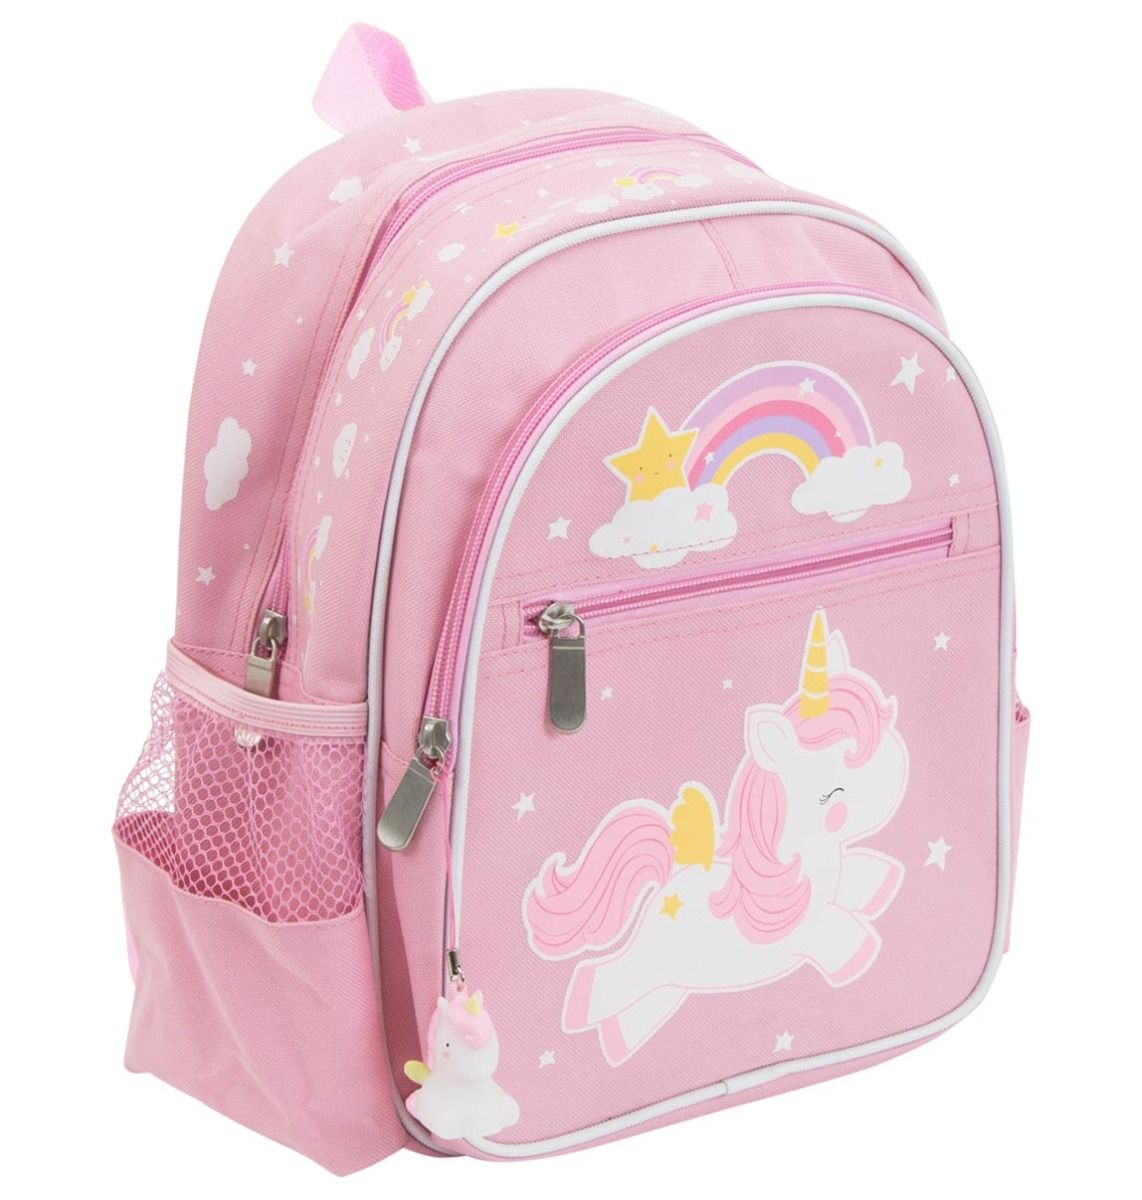 Unicorn Backpack by A Lovely Little Company - PIQ